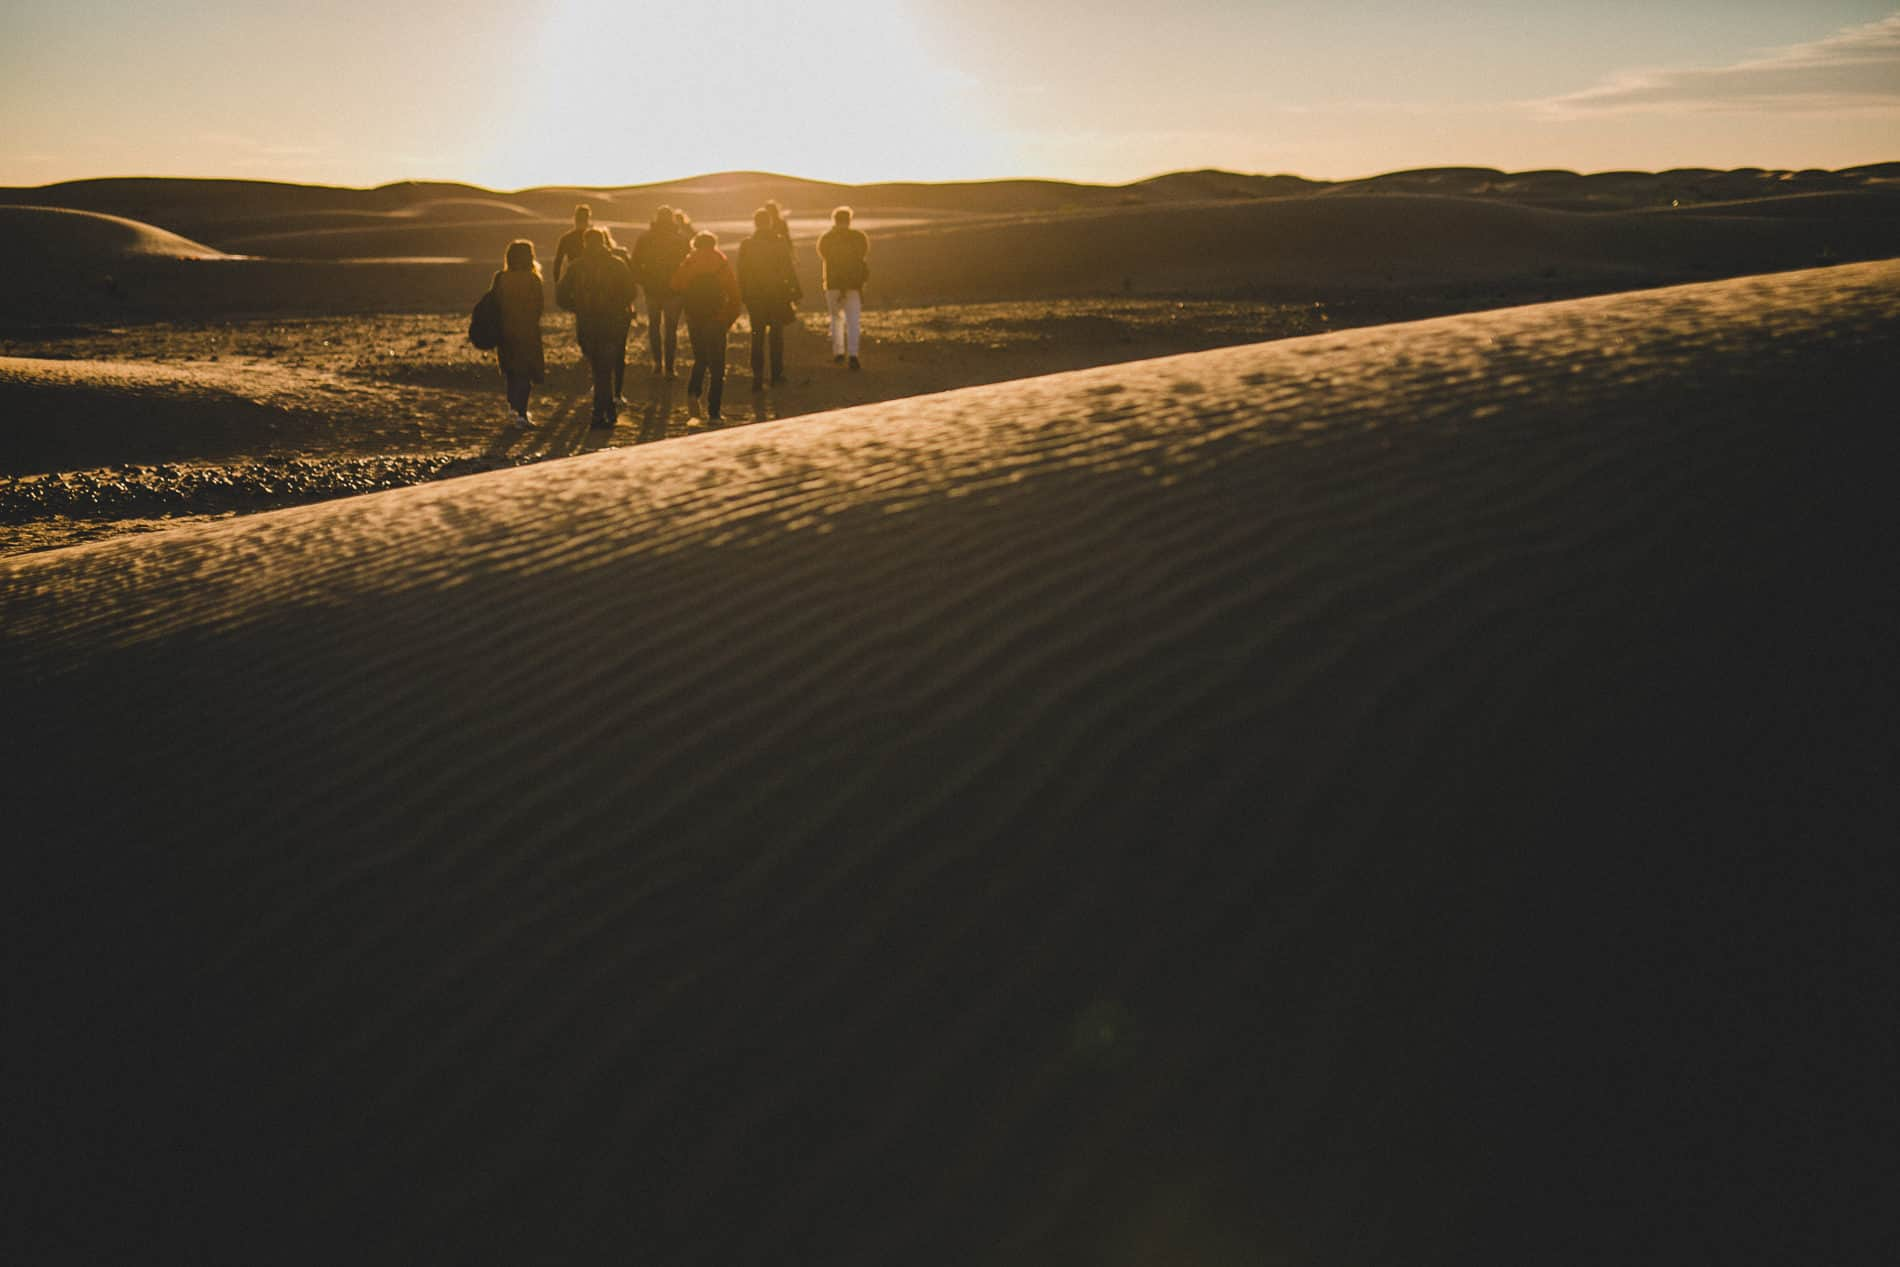 wedding photography workshop in the middle of merzouga desert